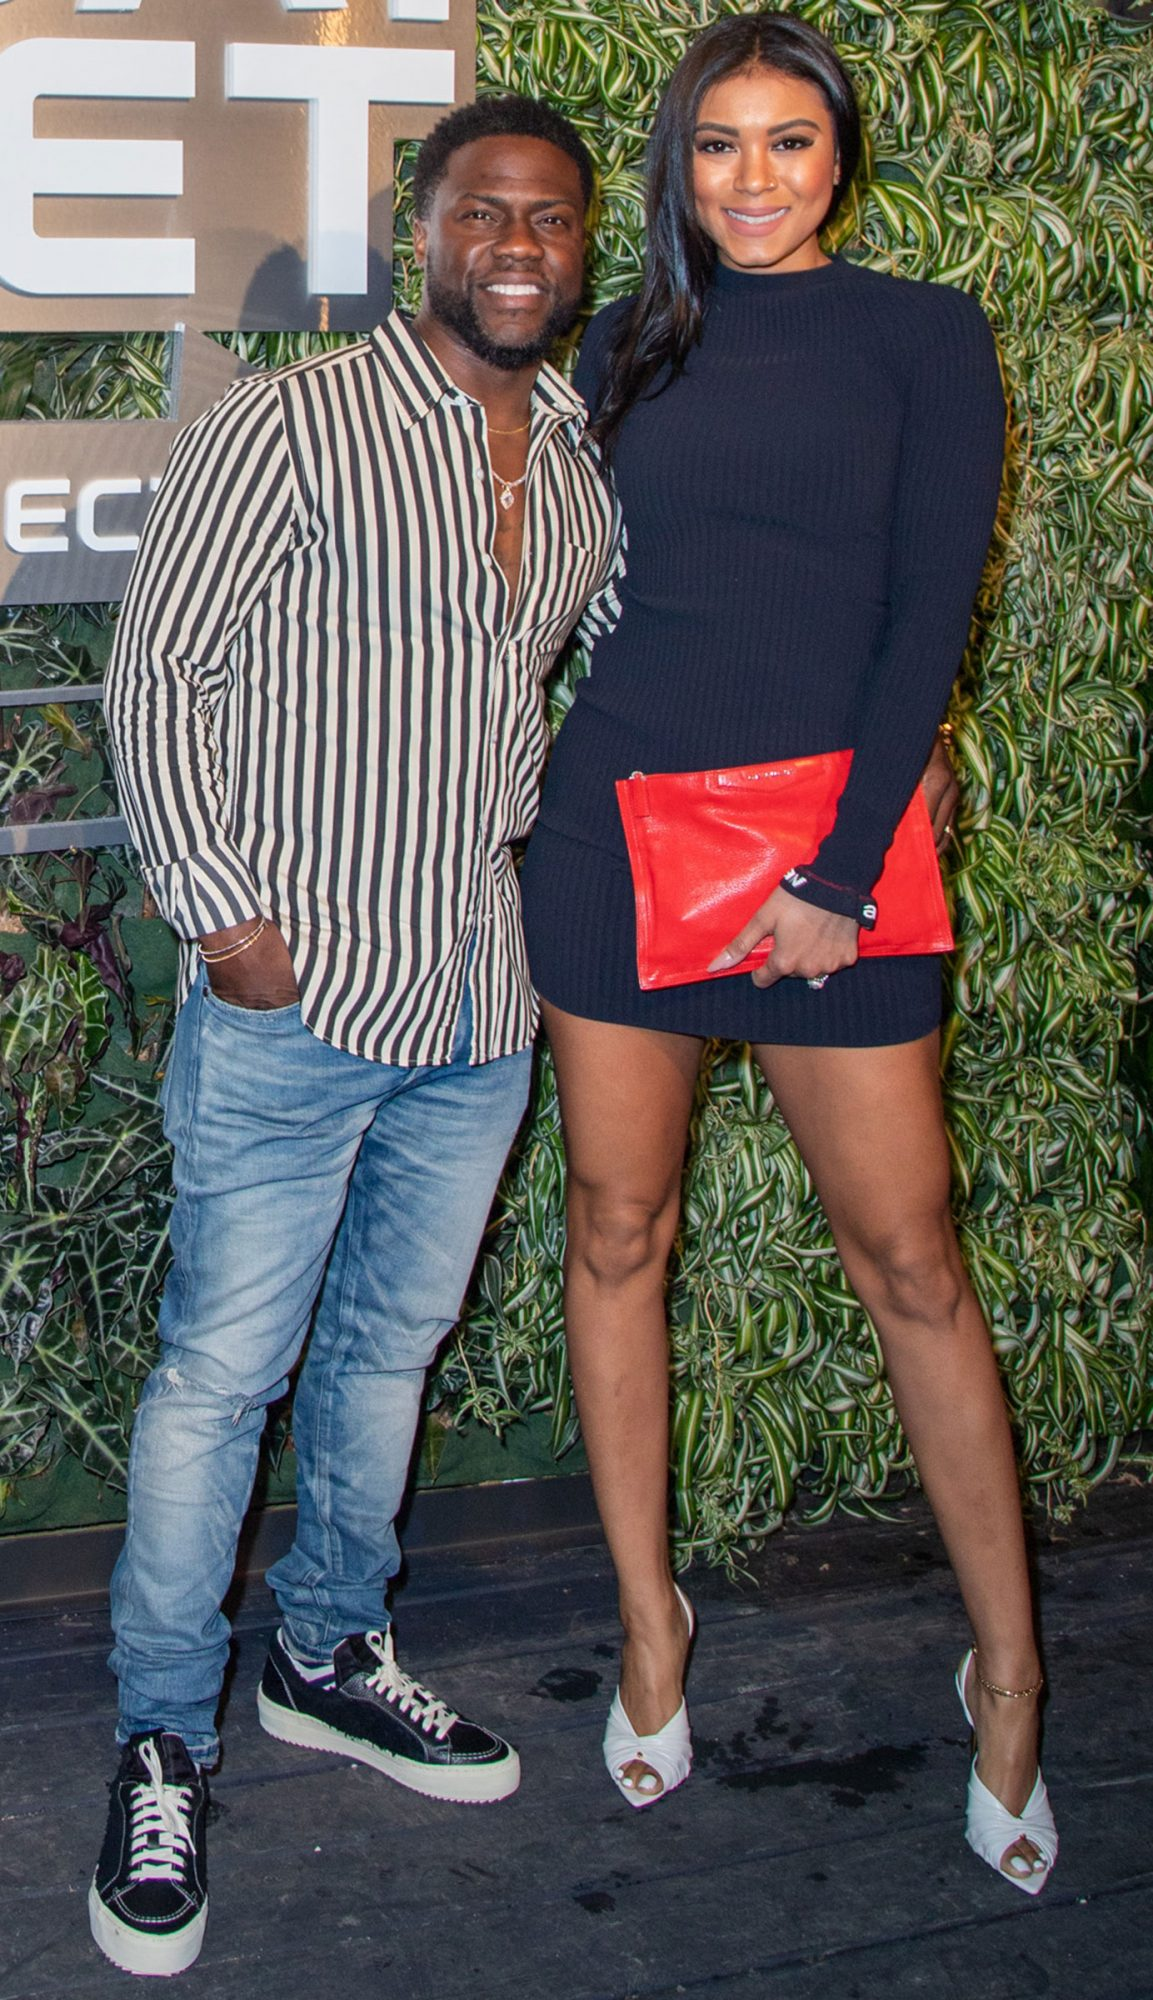 Kevin Hart, Eniko Parrish 'Thrilled' About Pregnancy, Says Source: Marriage 'Is Stronger Than Ever'